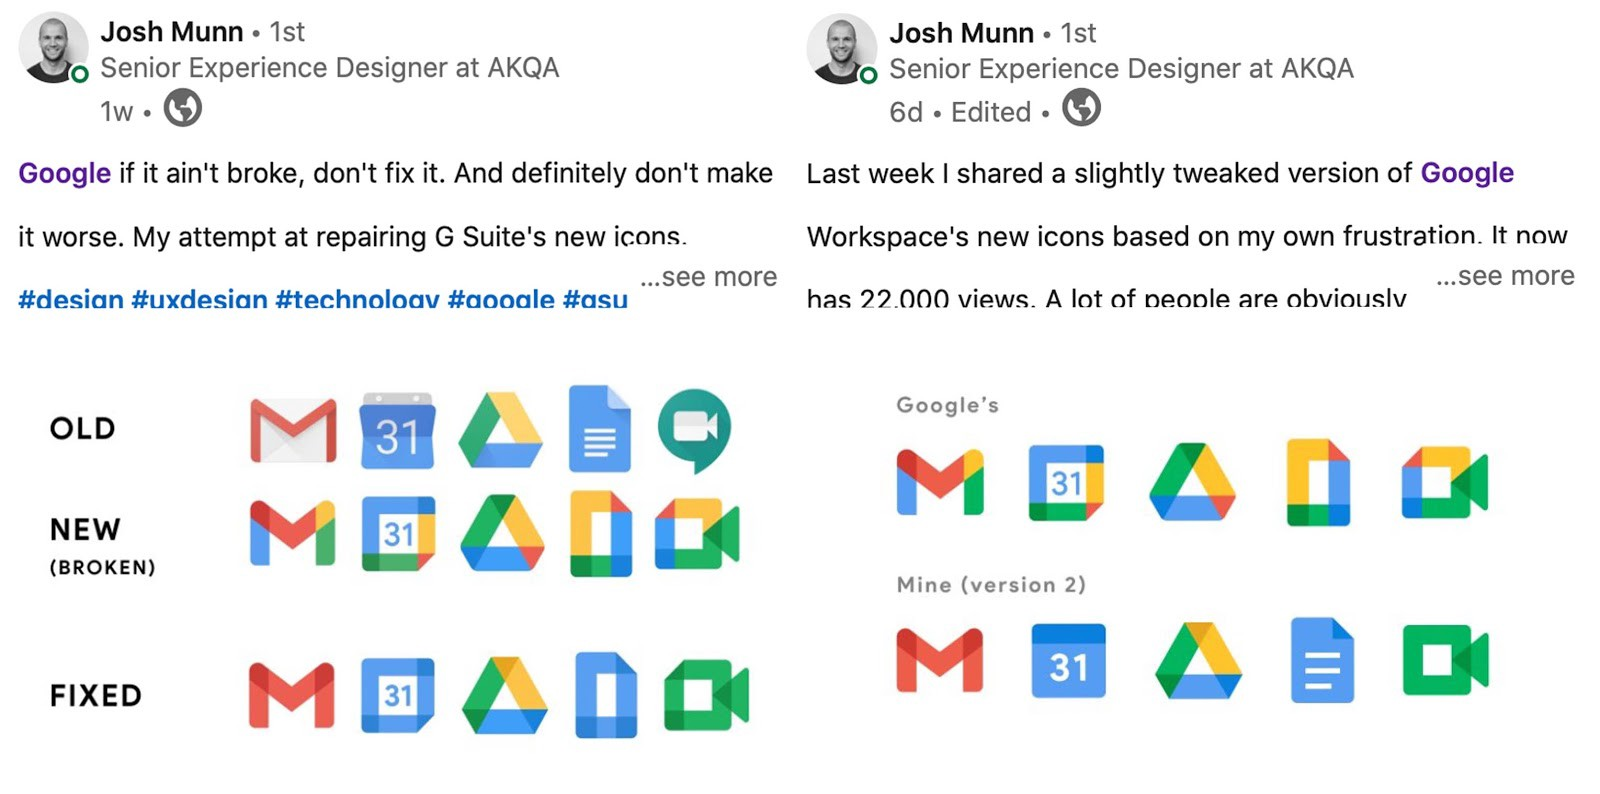 A designer, Josh Munn's, concept for how Google could better design their icons.